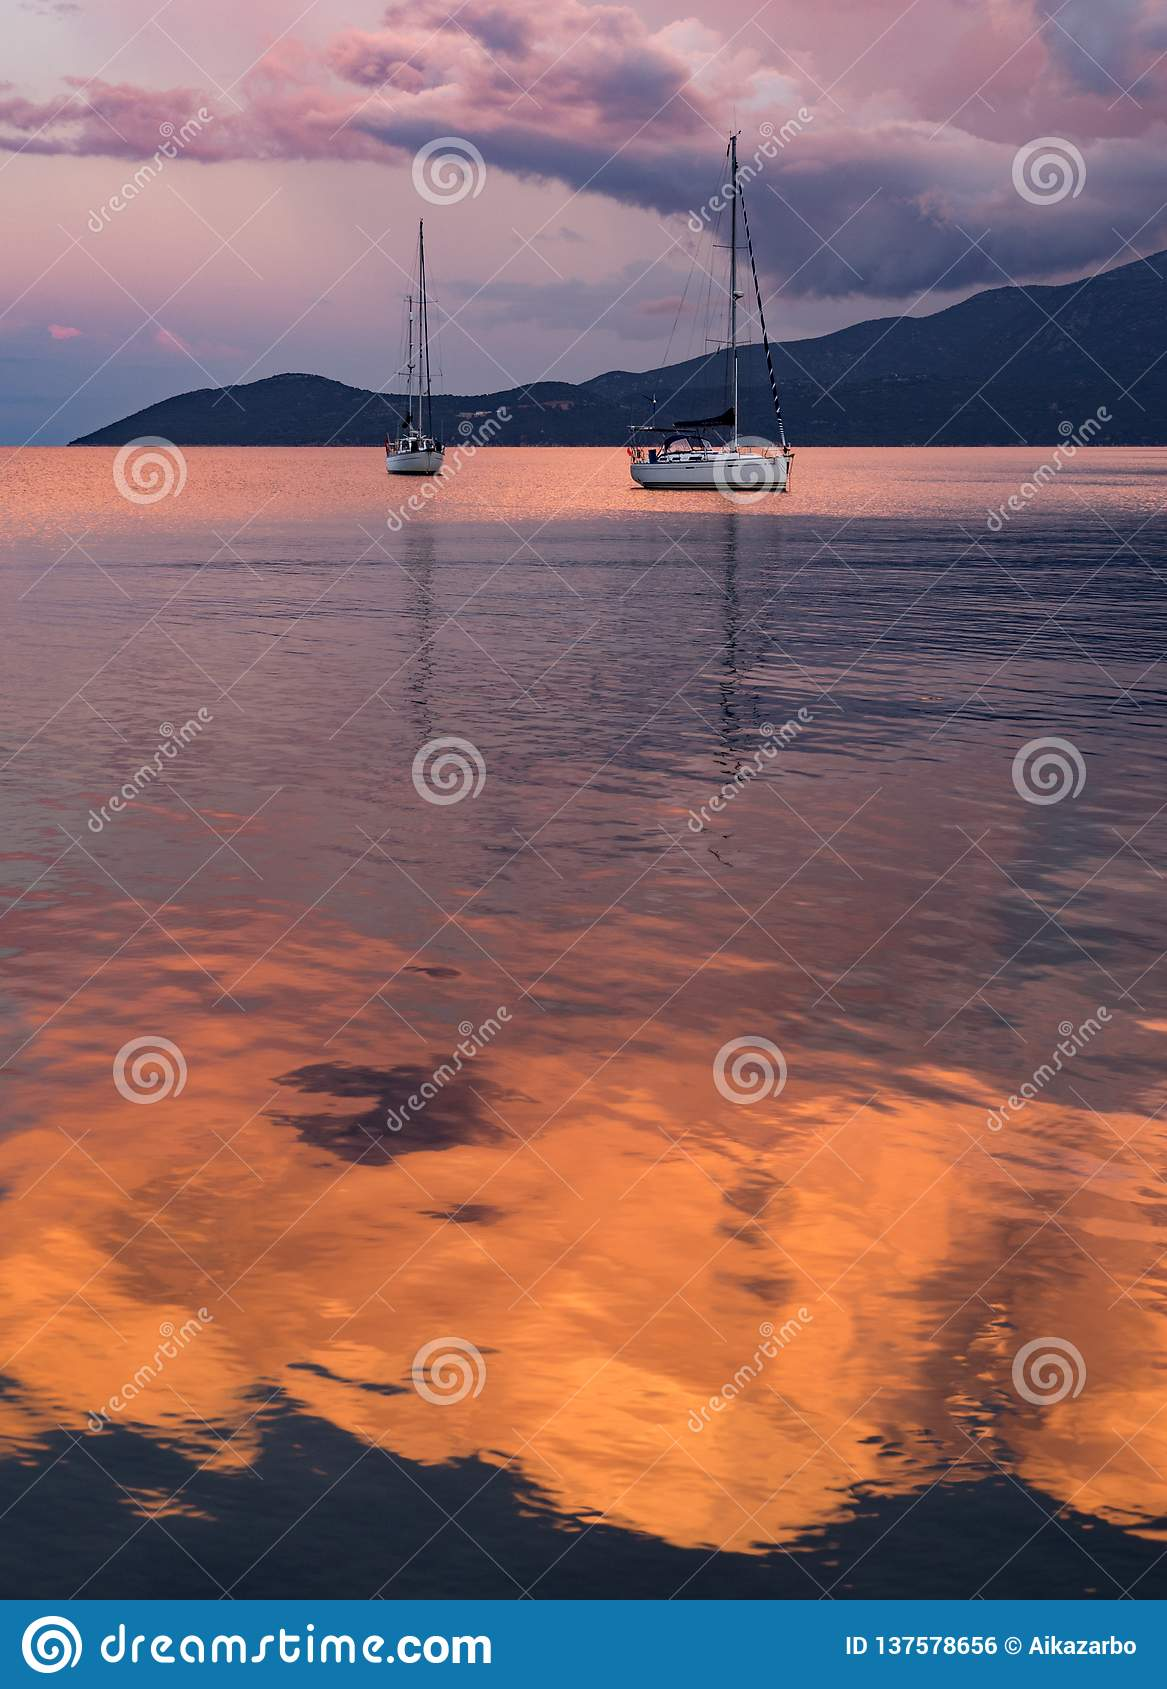 Beautiful sunset and yacht in the Ionian Sea on the island of Kefalonia in Greece